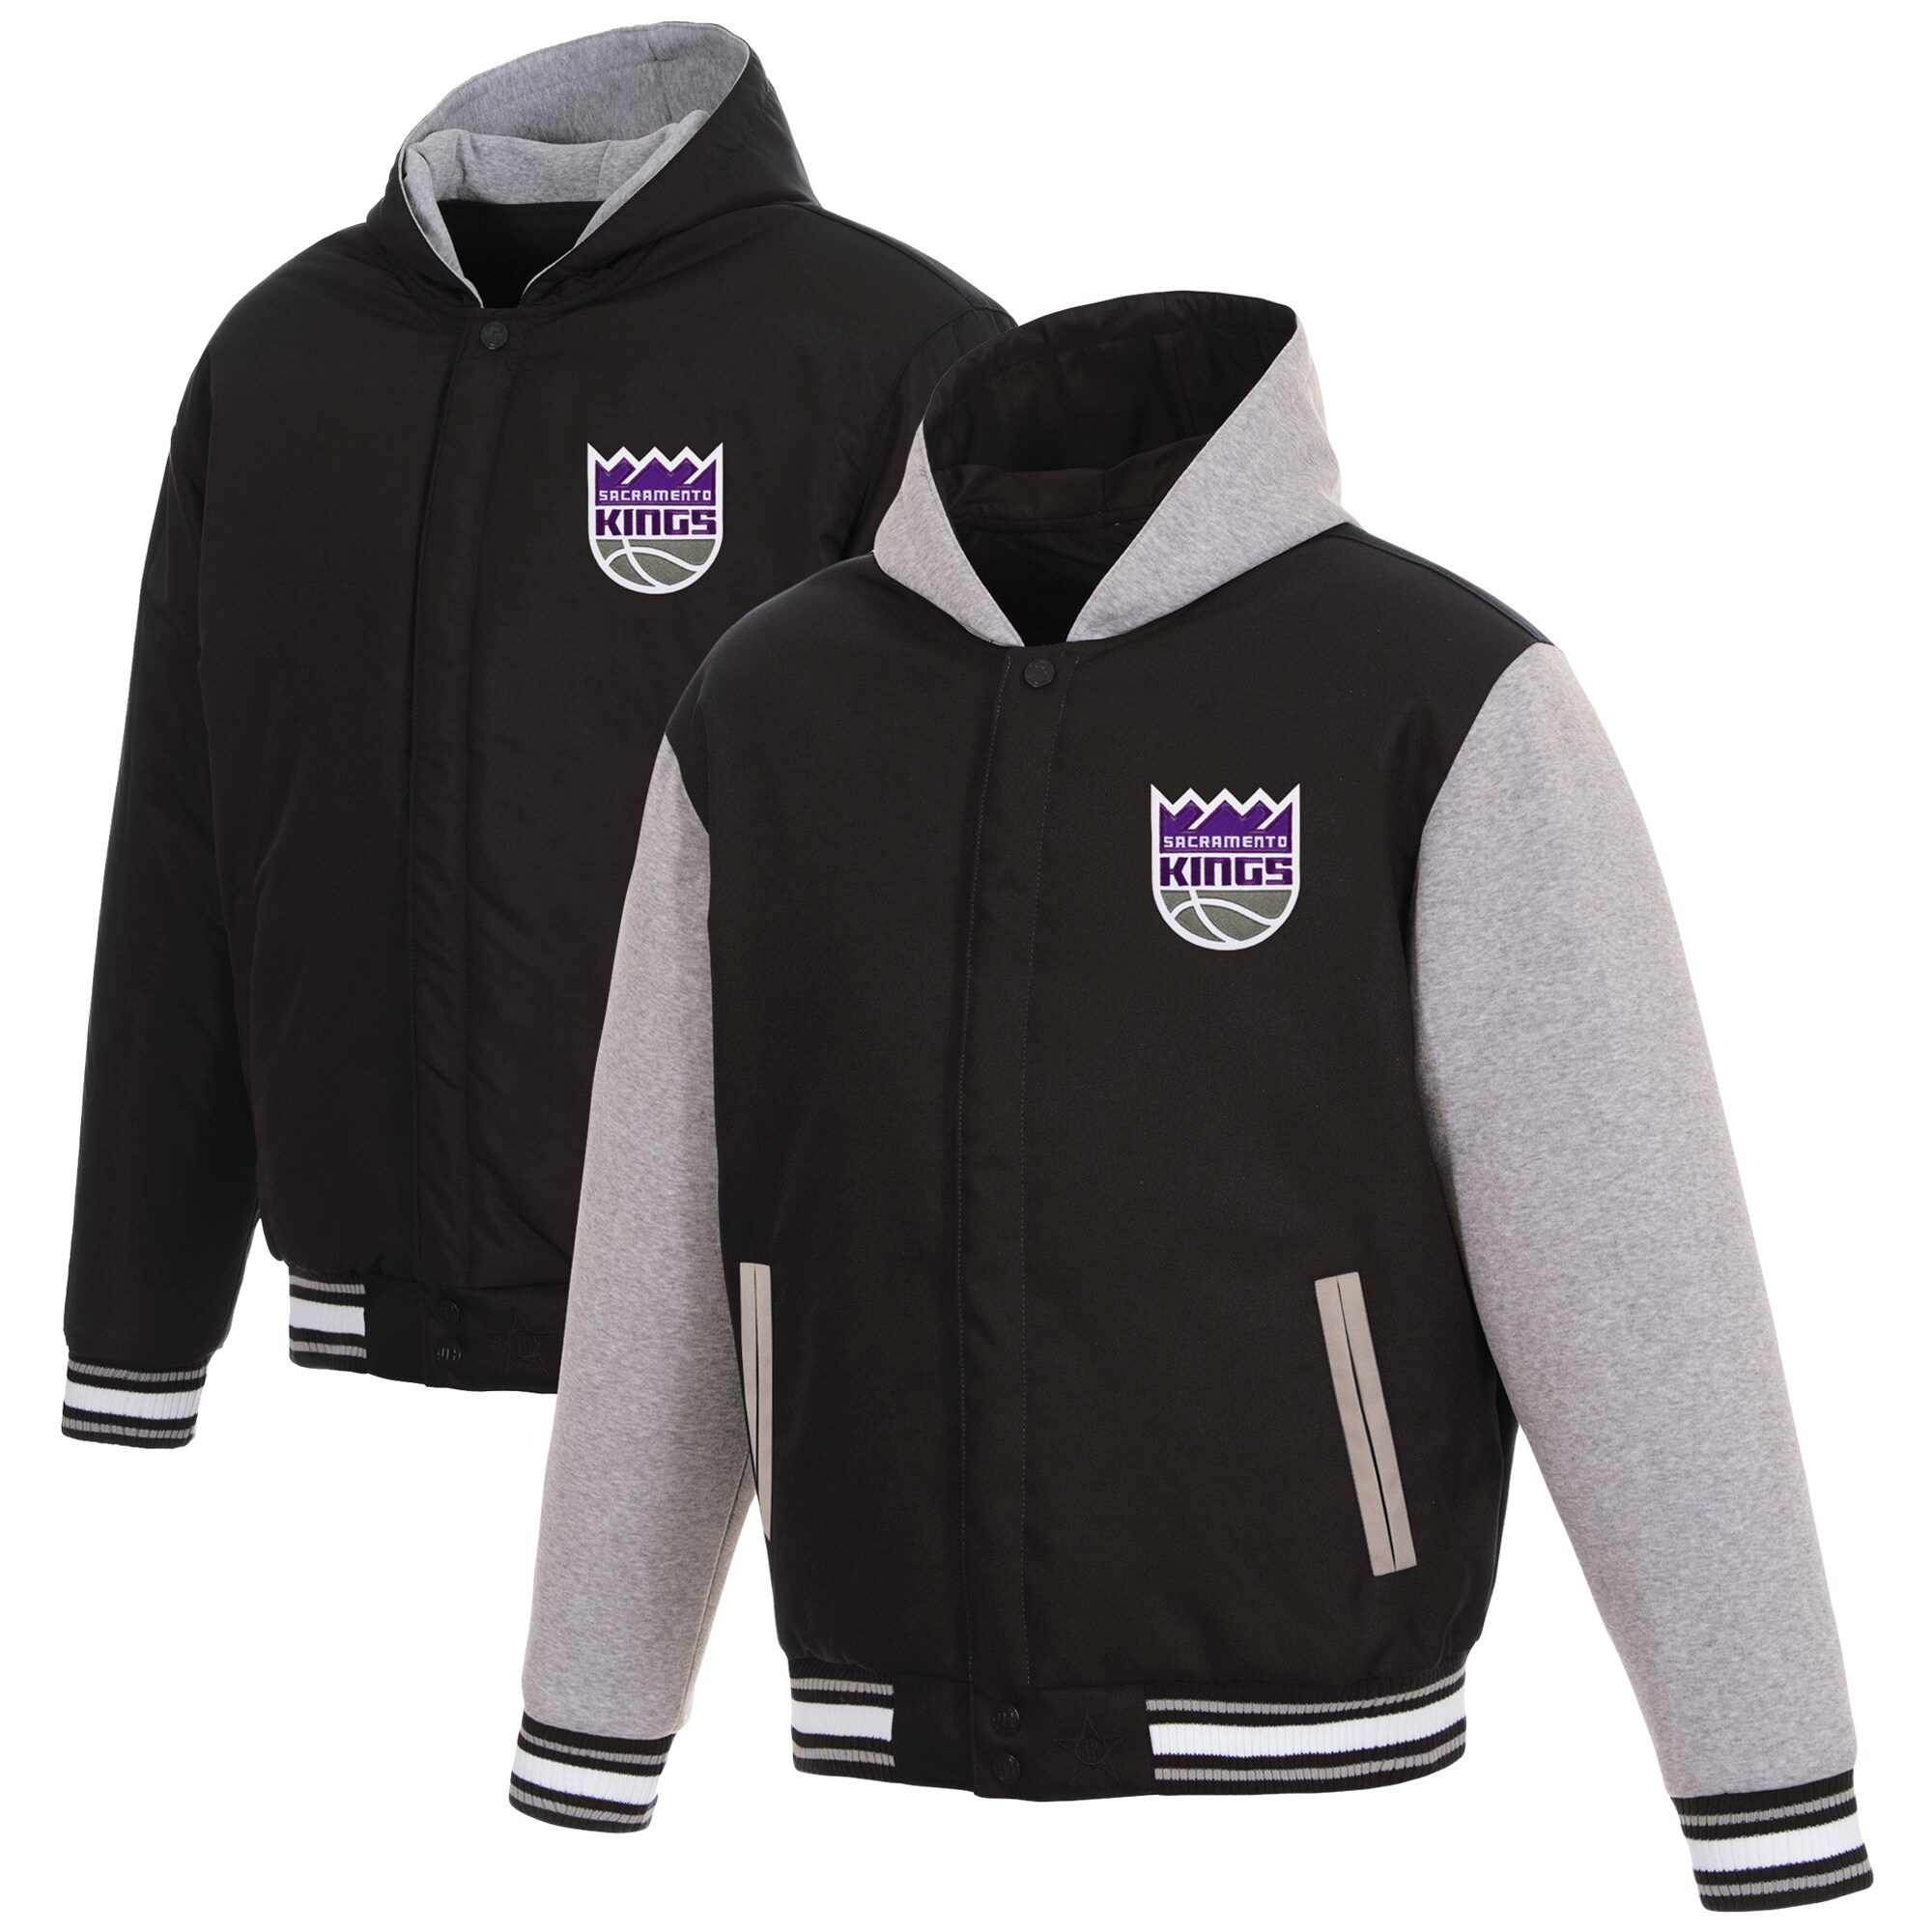 Sacramento Kings JH Design Reversible Poly-Twill Hooded Jacket with Fleece Sleeves - Black/Gray